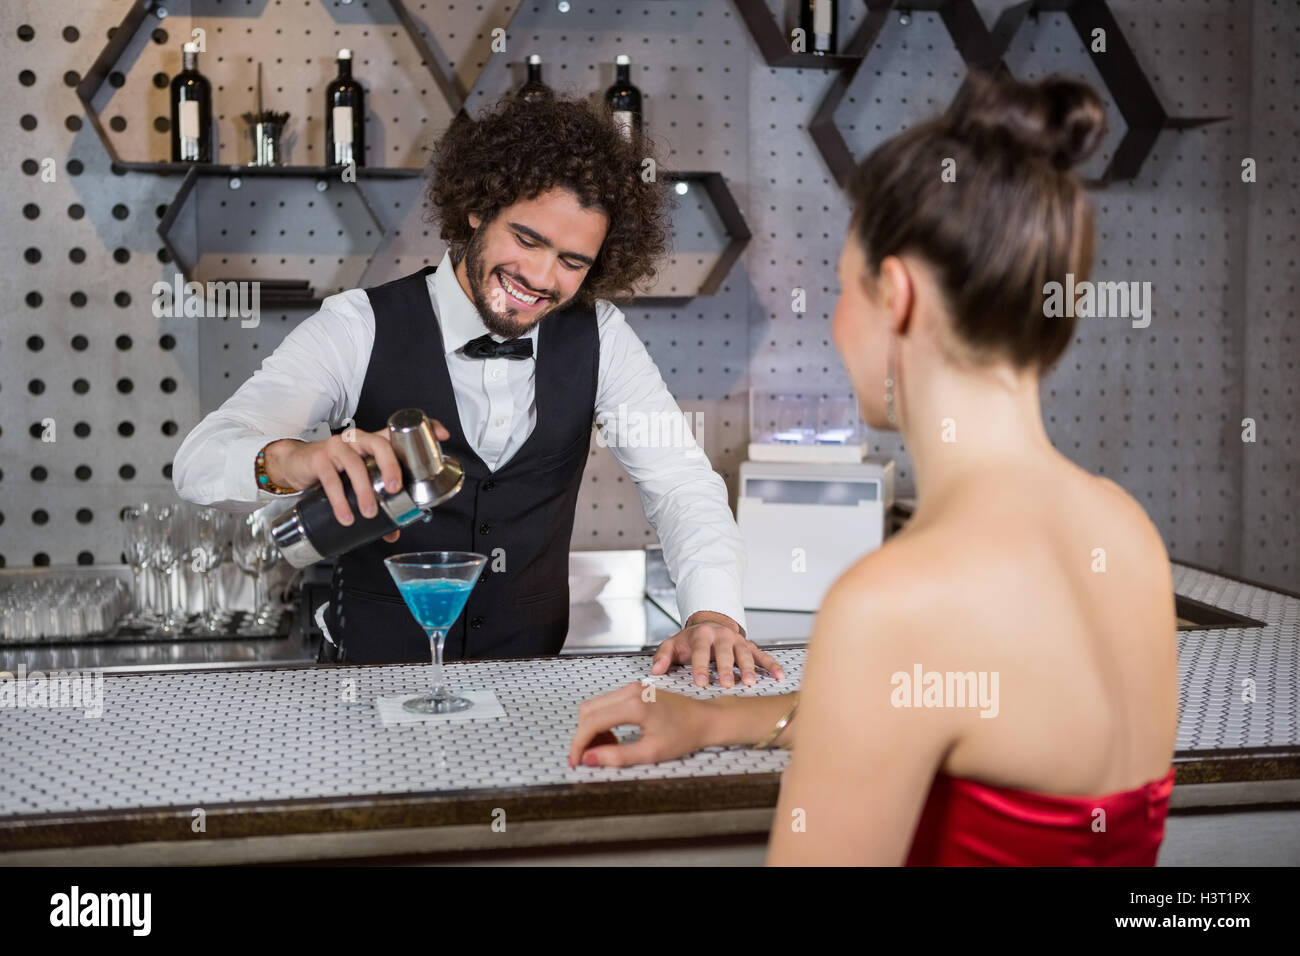 Waiter pouring cocktail in womans glass at bar counter - Stock Image